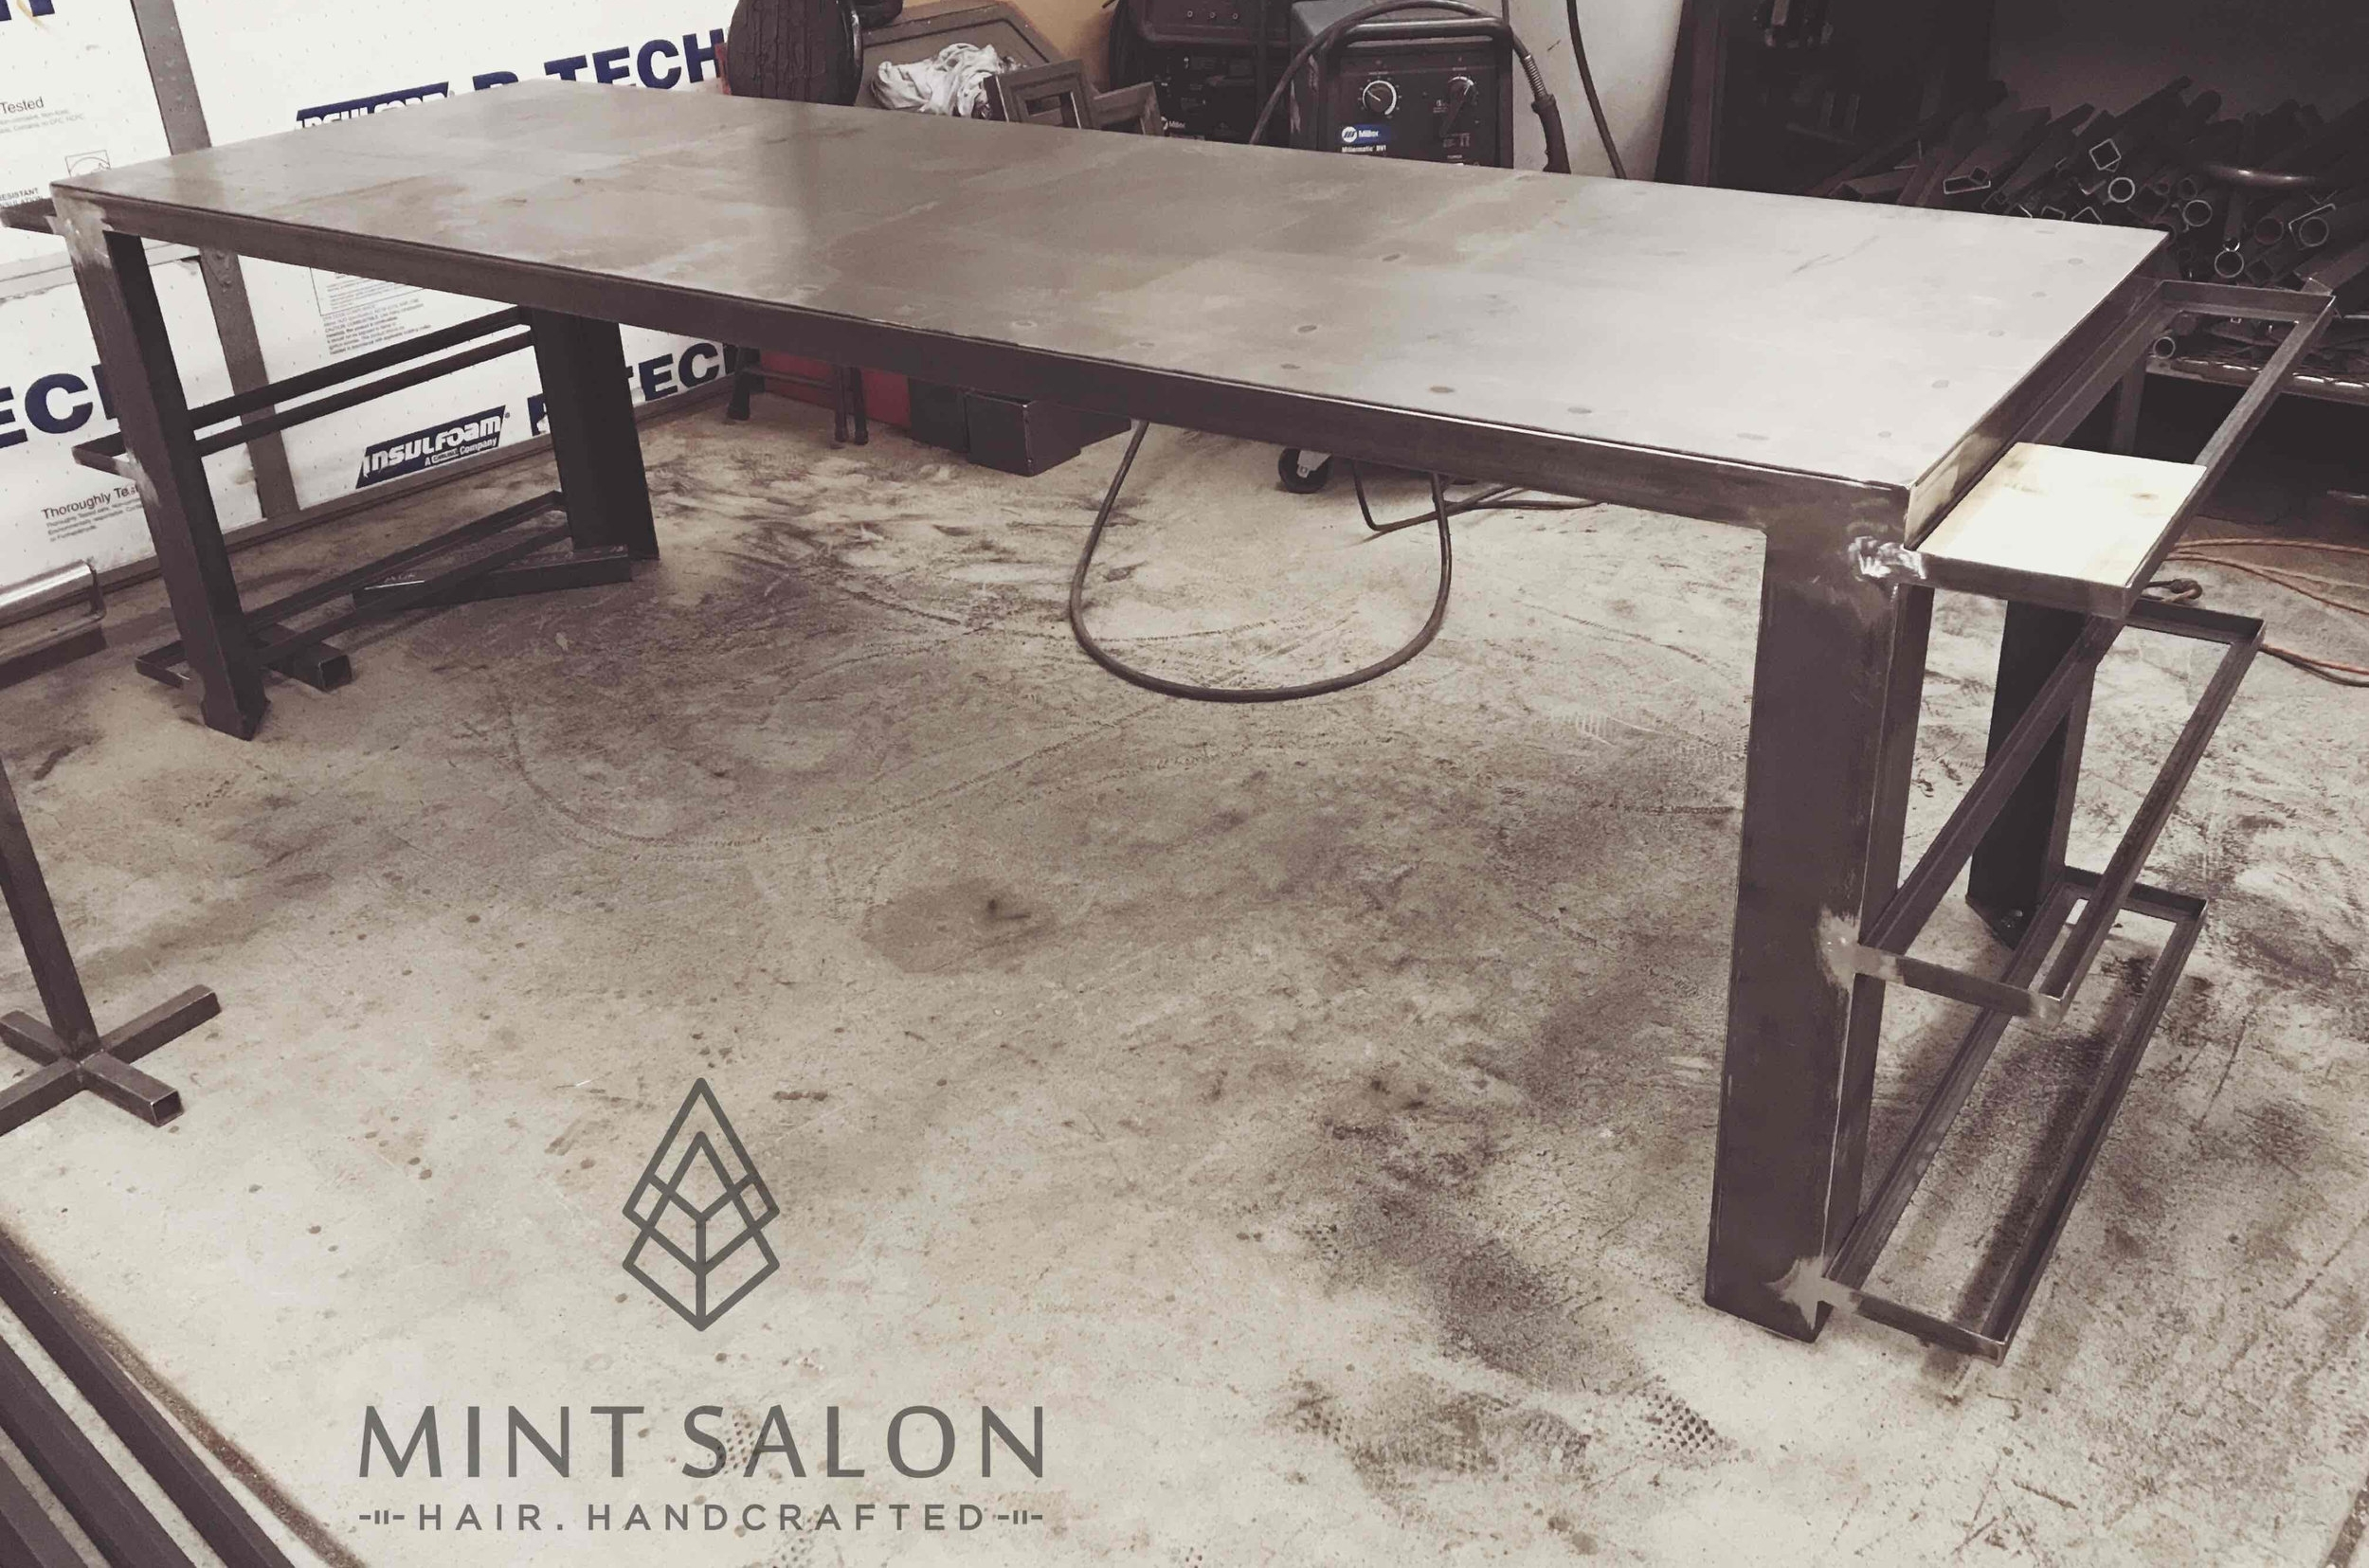 Custom processing and product table in progress.